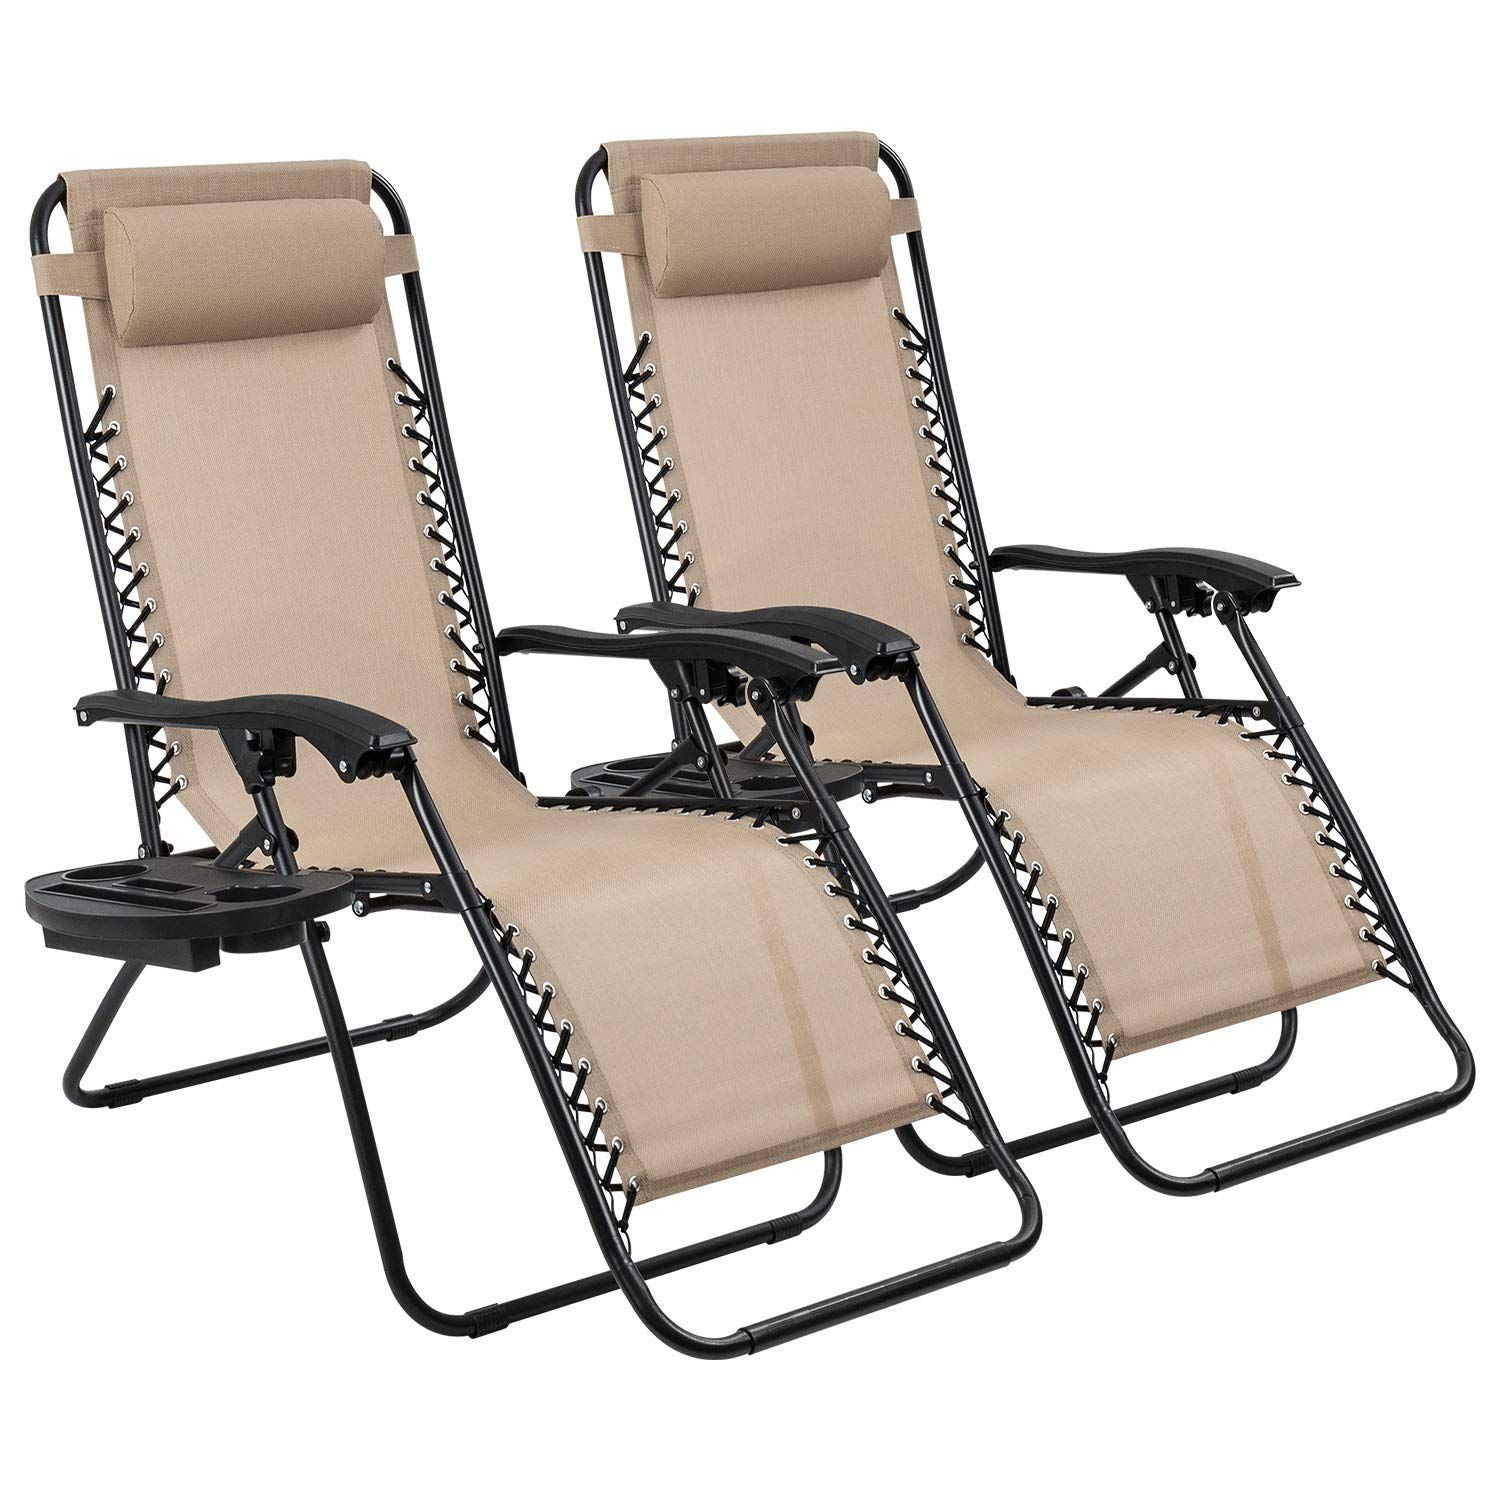 The Devoko Patio Zero Gravity Chair Free Folding And Reclining Deck Chair Zero Gravity Chair Outdoor Folding Lounge Chair Gravity Chair